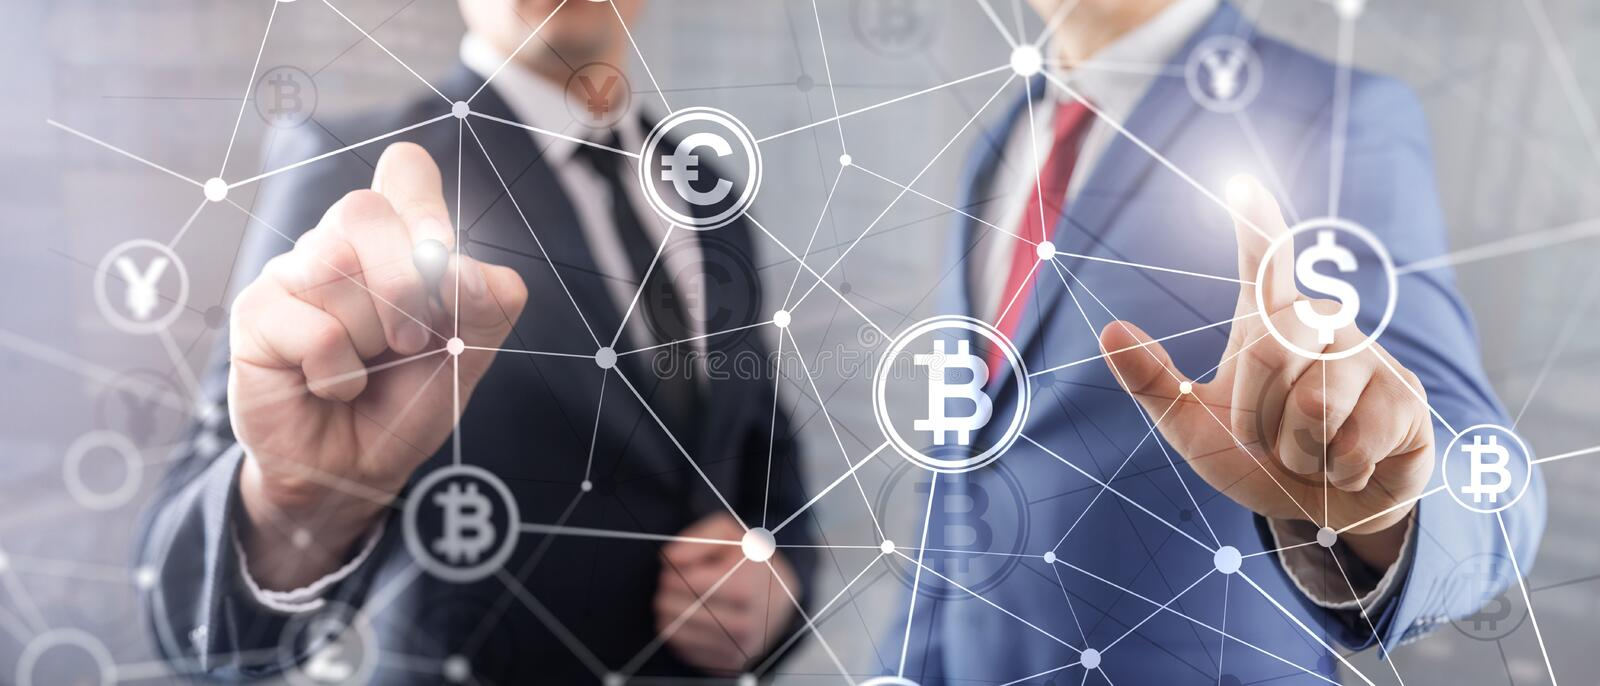 Double exposure Bitcoin and blockchain concept. Digital economy and currency trading. stock photos